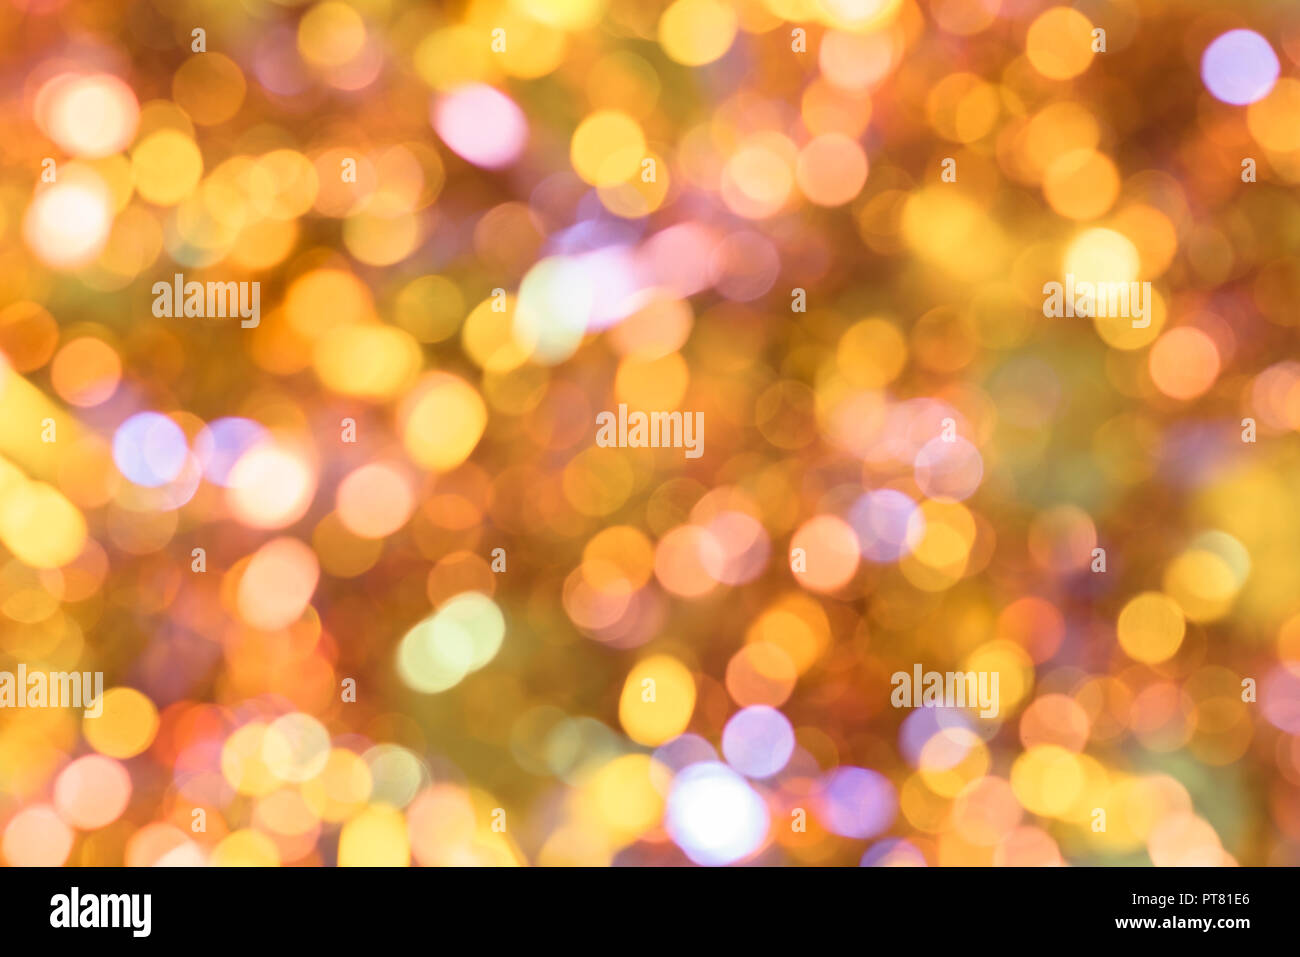 Background Texture Full Of Unsharp Blurring Golden Yellow And Cute